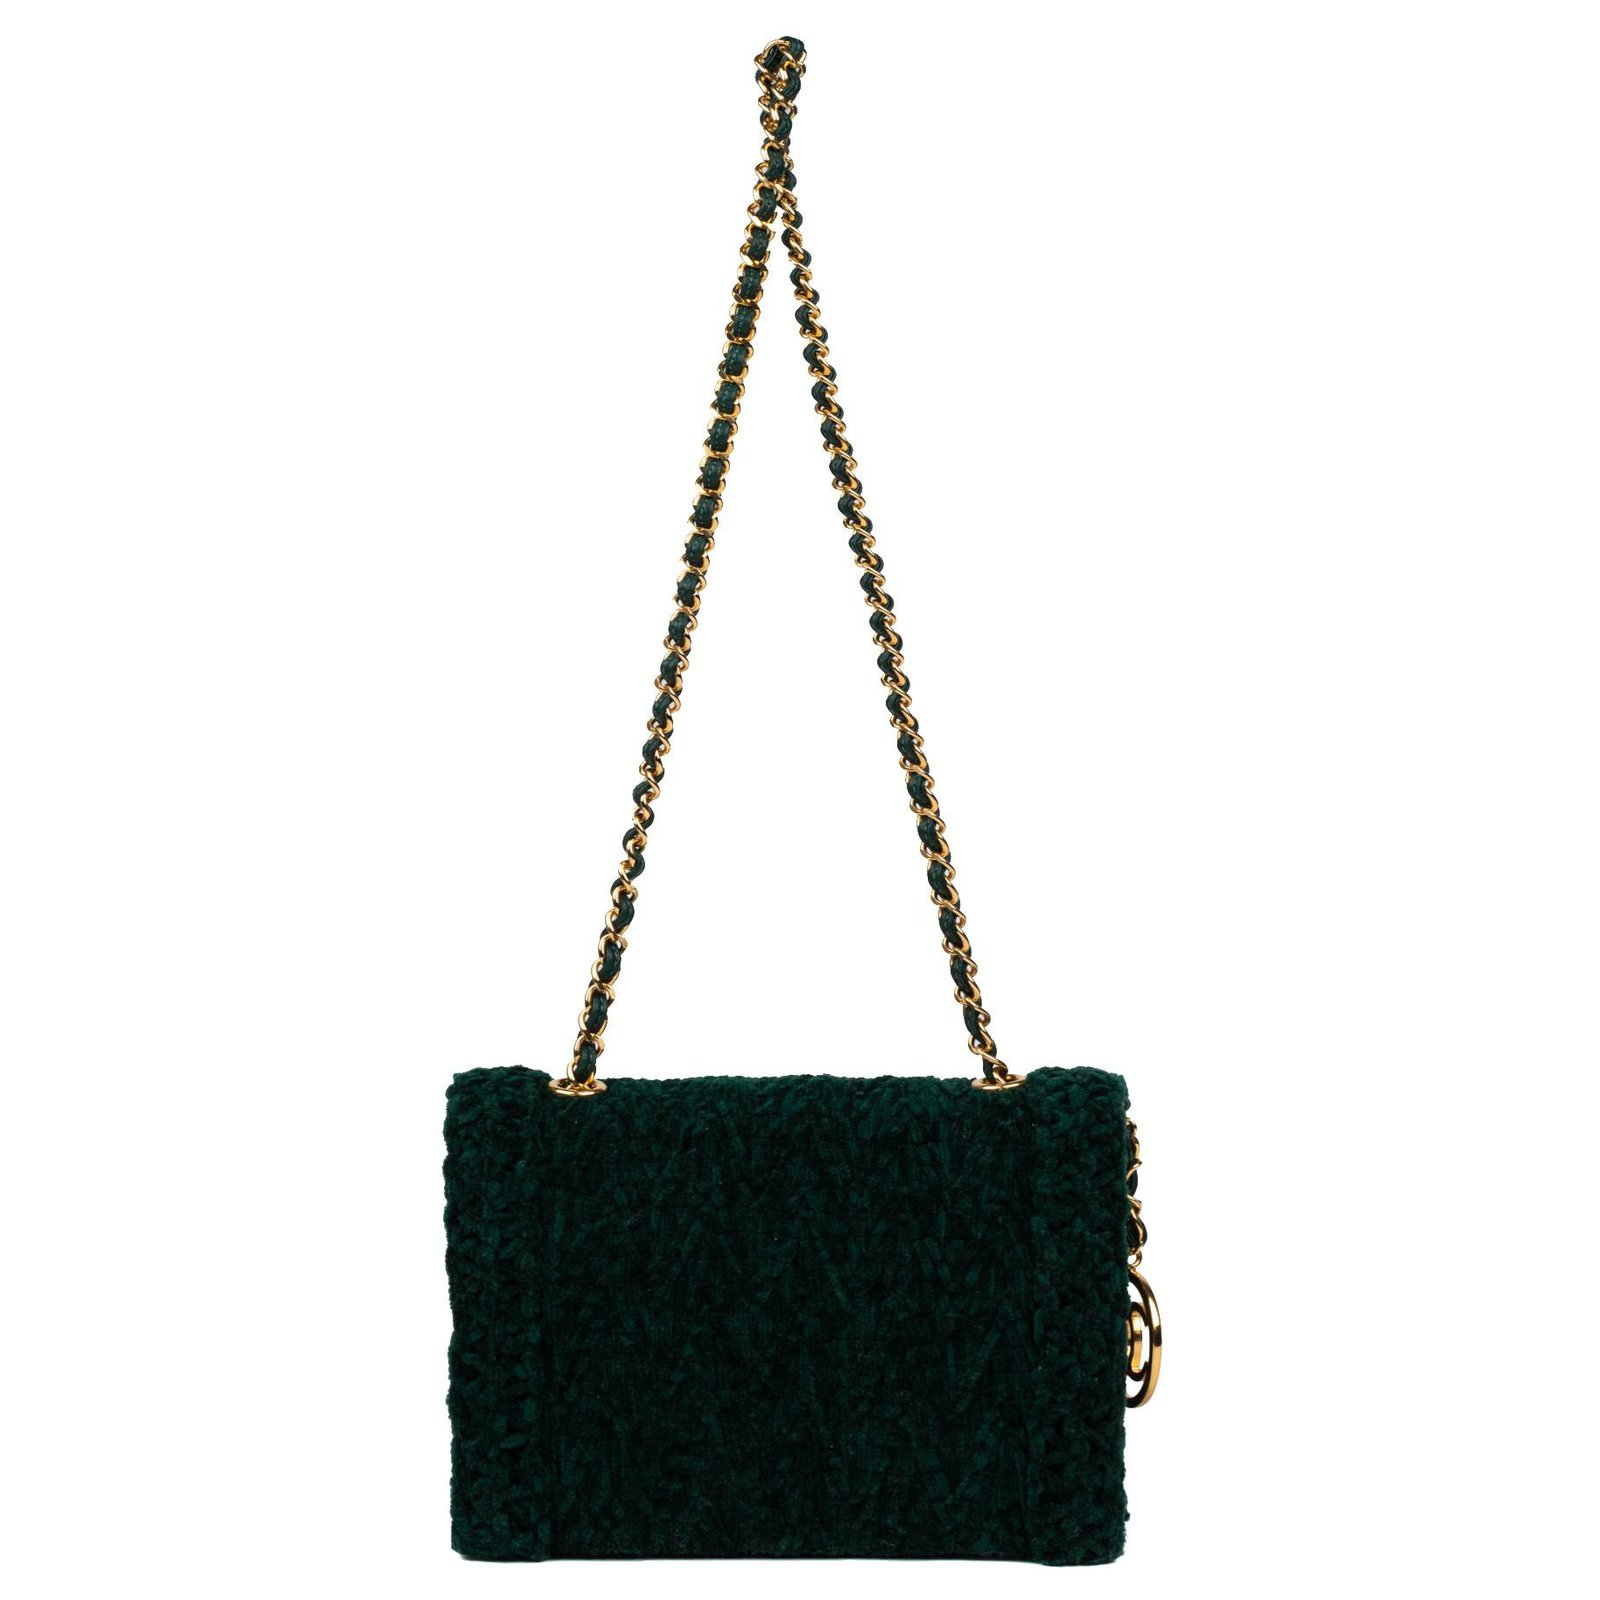 a52ff994611fb6 Chanel Beautiful Chanel evening bag in velvet and green leather in very  good condition! Handbags Leather,Velvet Green ref.124846 - Joli Closet